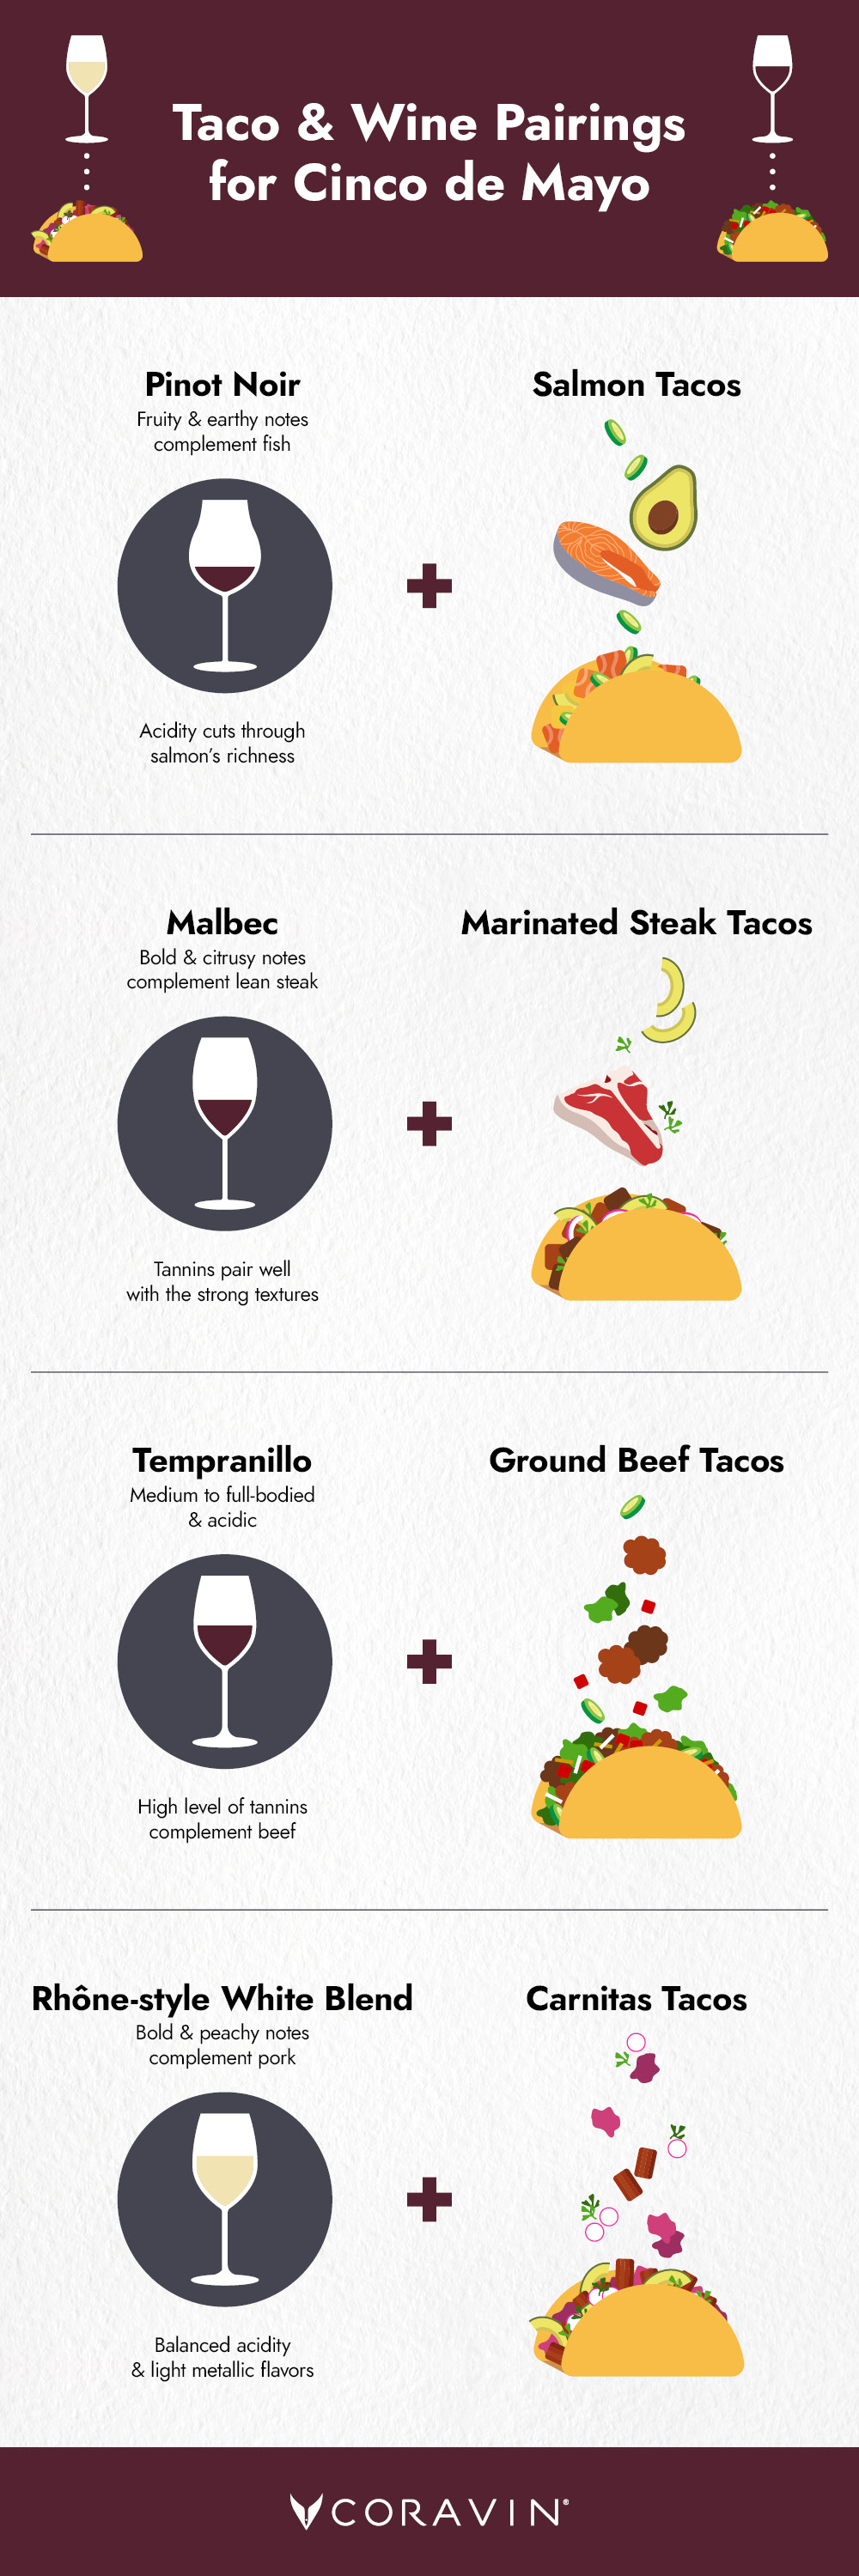 taco infographic with wine pairings